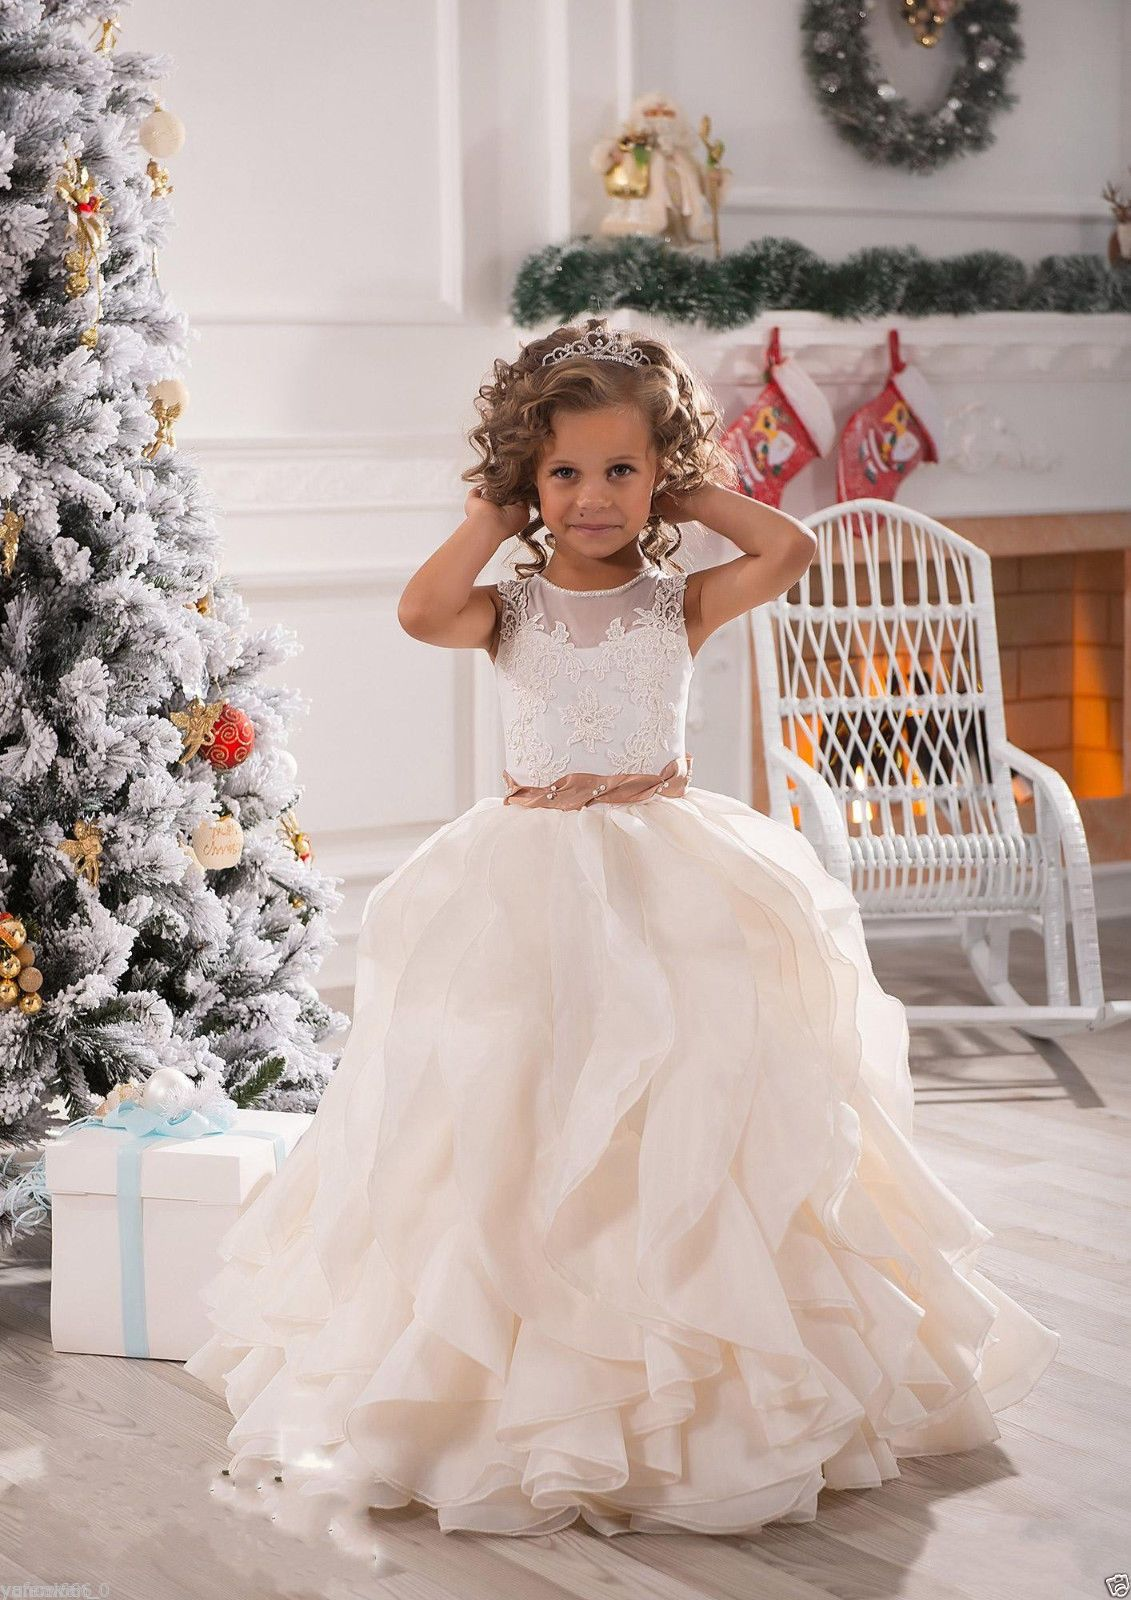 Details About New White Ivoryruffles Wedding Prom Kids Pageant Baby Princess Flower Dress